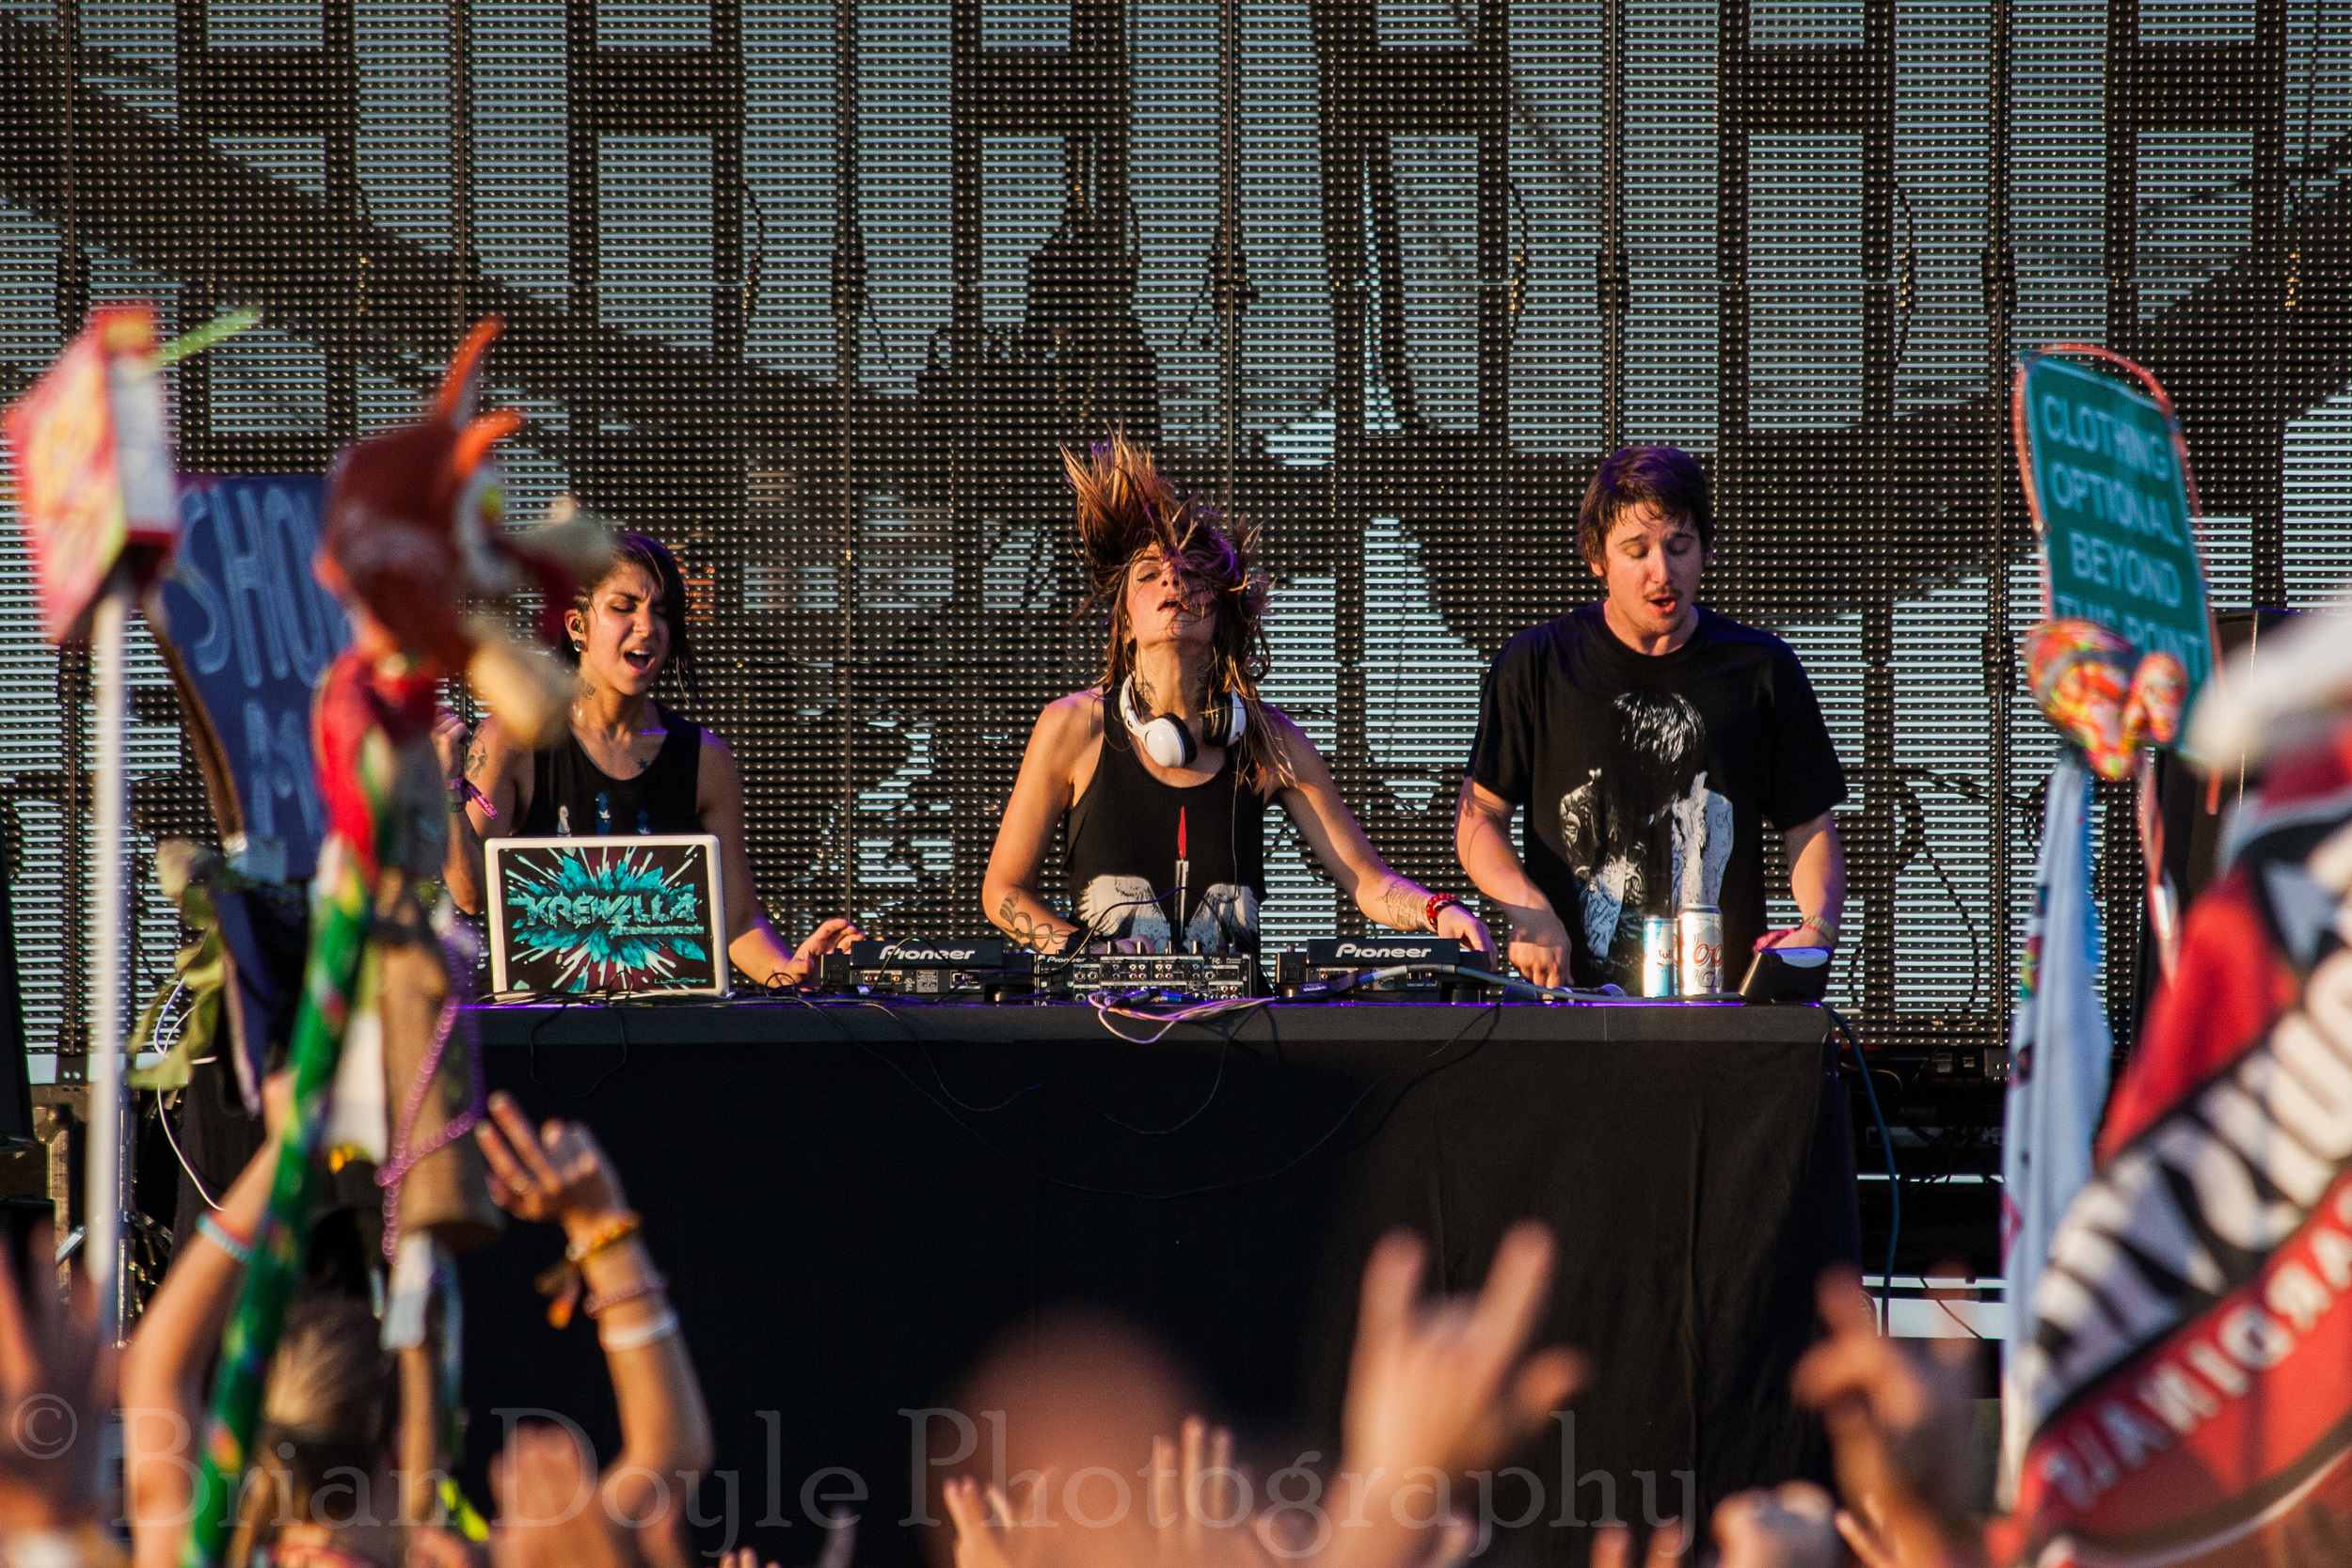 Summer Set Sunday 2013-54.jpg